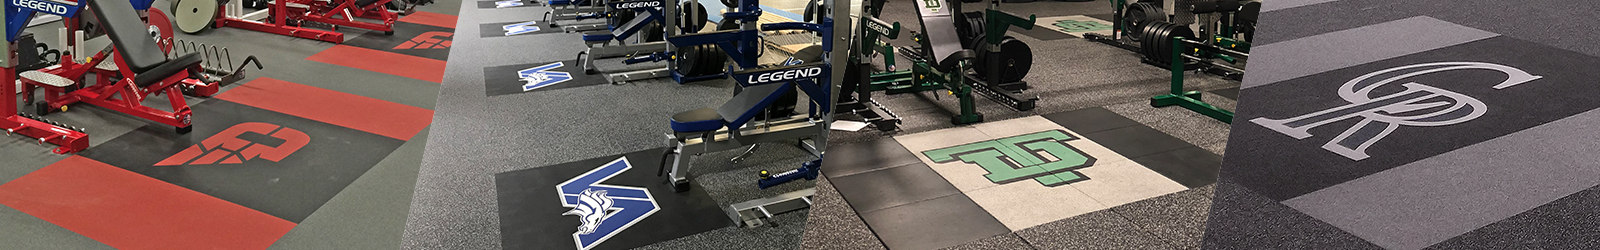 Inlaid Rubber Platforms from Legend Fitness